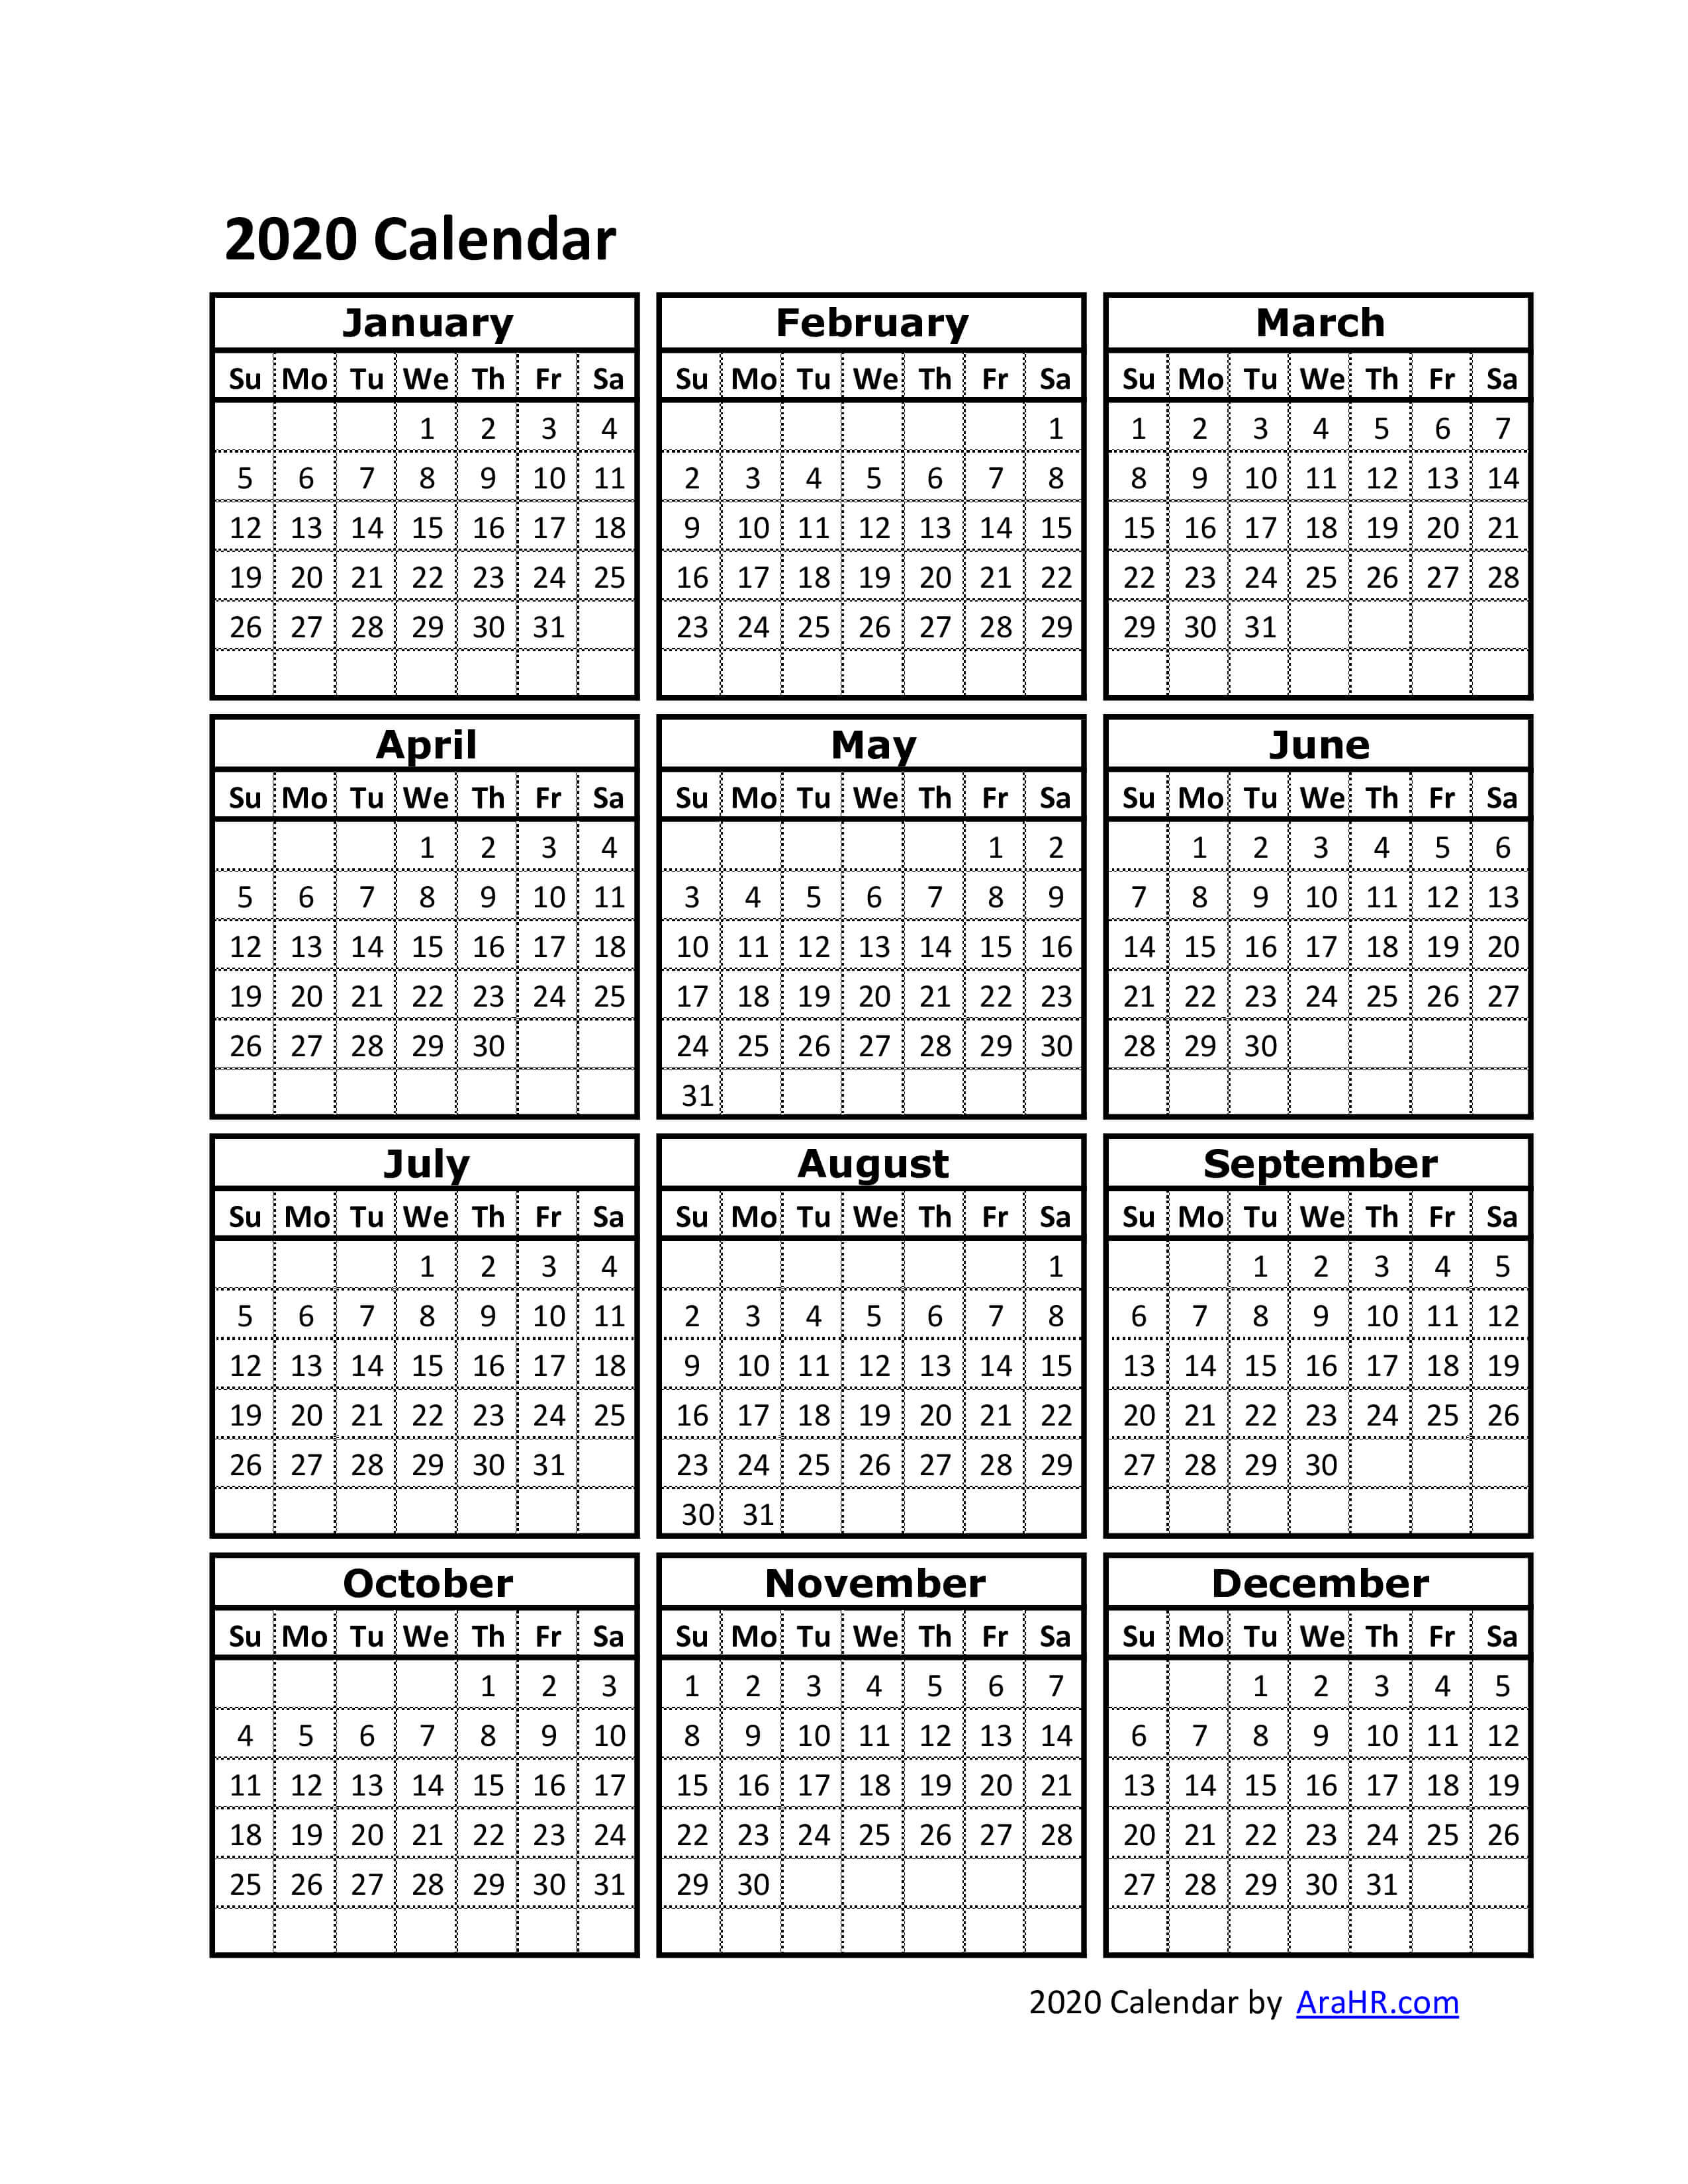 Printable 2020 Calendar One Page.2020 Calendar Yearly Monthly Free Printable